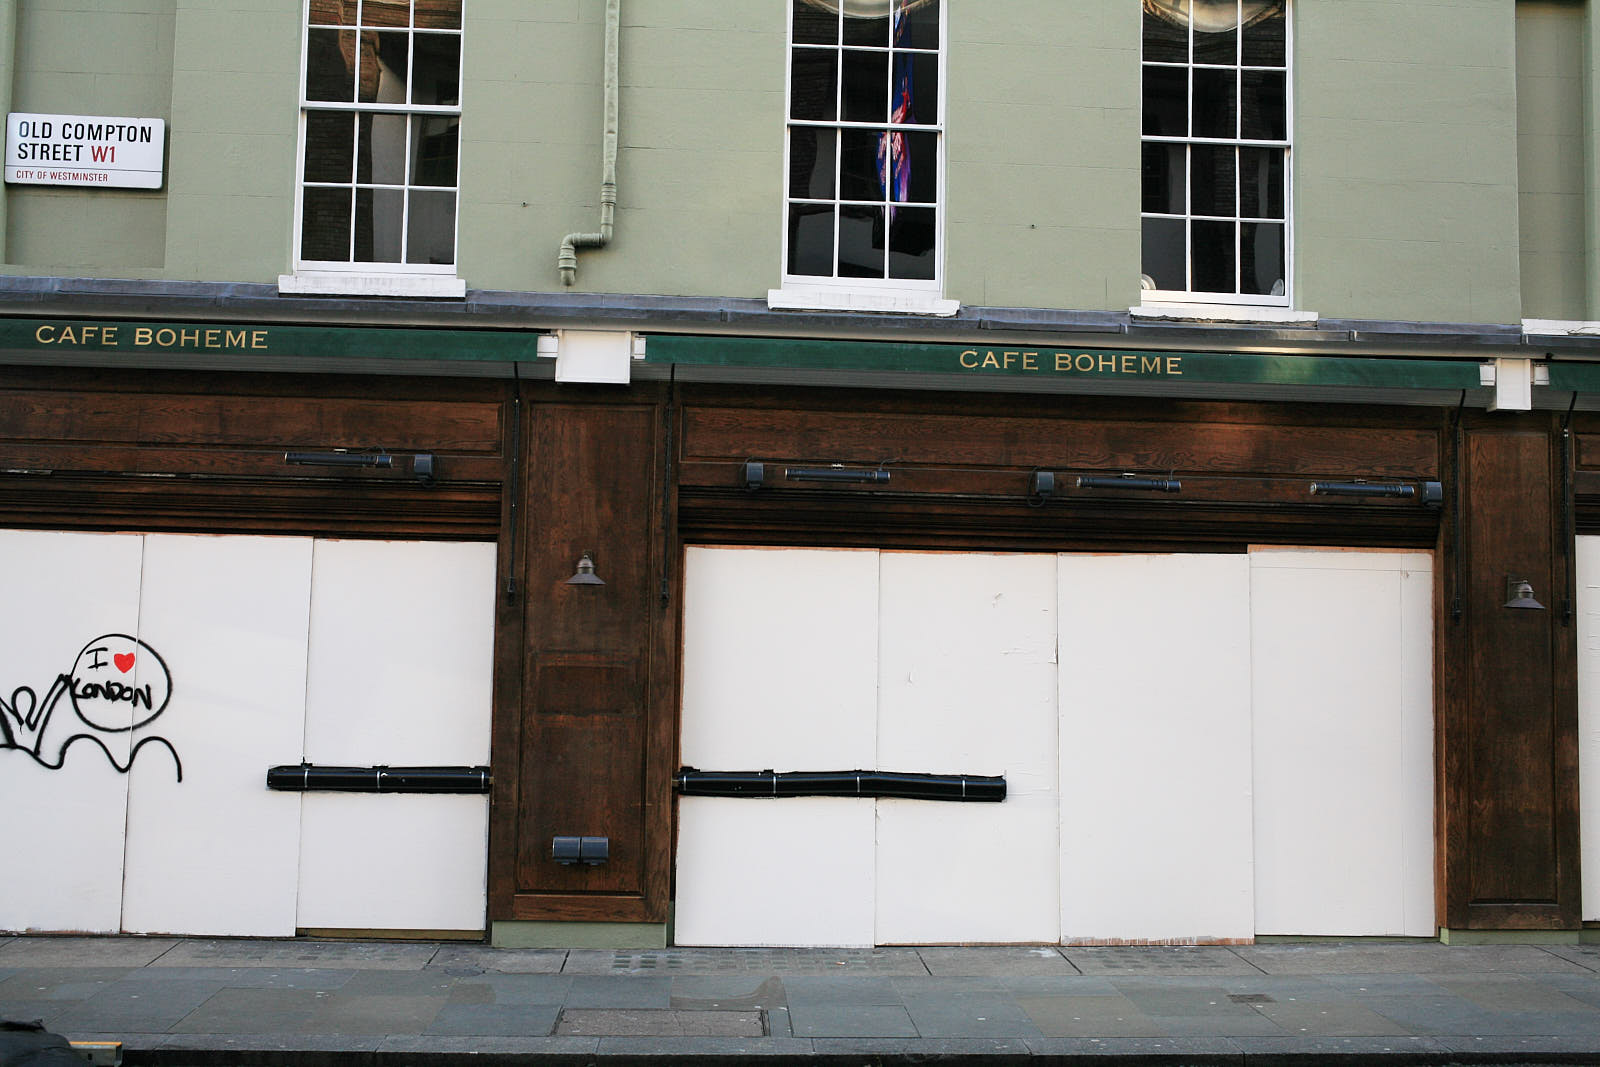 Cafe Boheme in Soho boarded up at the beginning of 2021